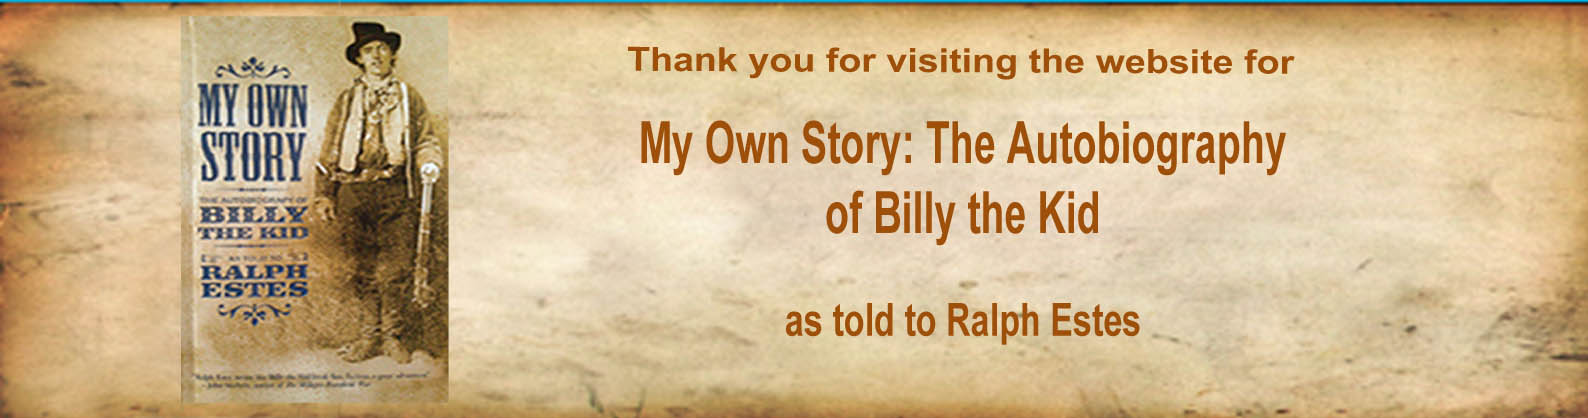 Welcome to My Own Story: The Autobiography of Billy the Kid website